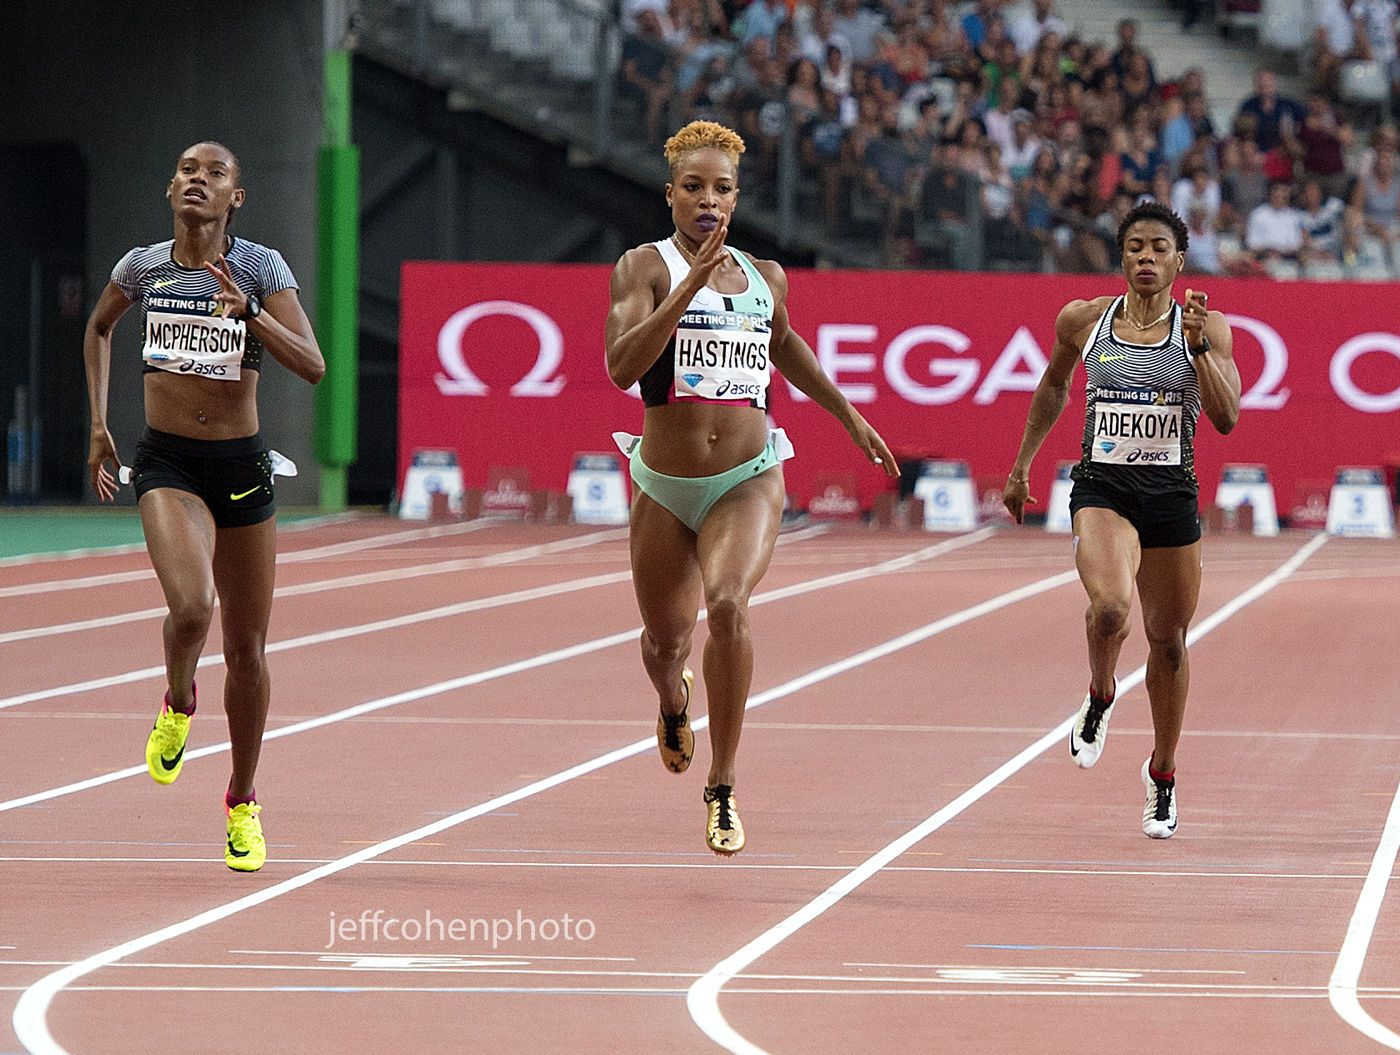 1r2016_meeting_de_paris_hastings_400m_2_jeff_cohen_photo_3948_web.jpg